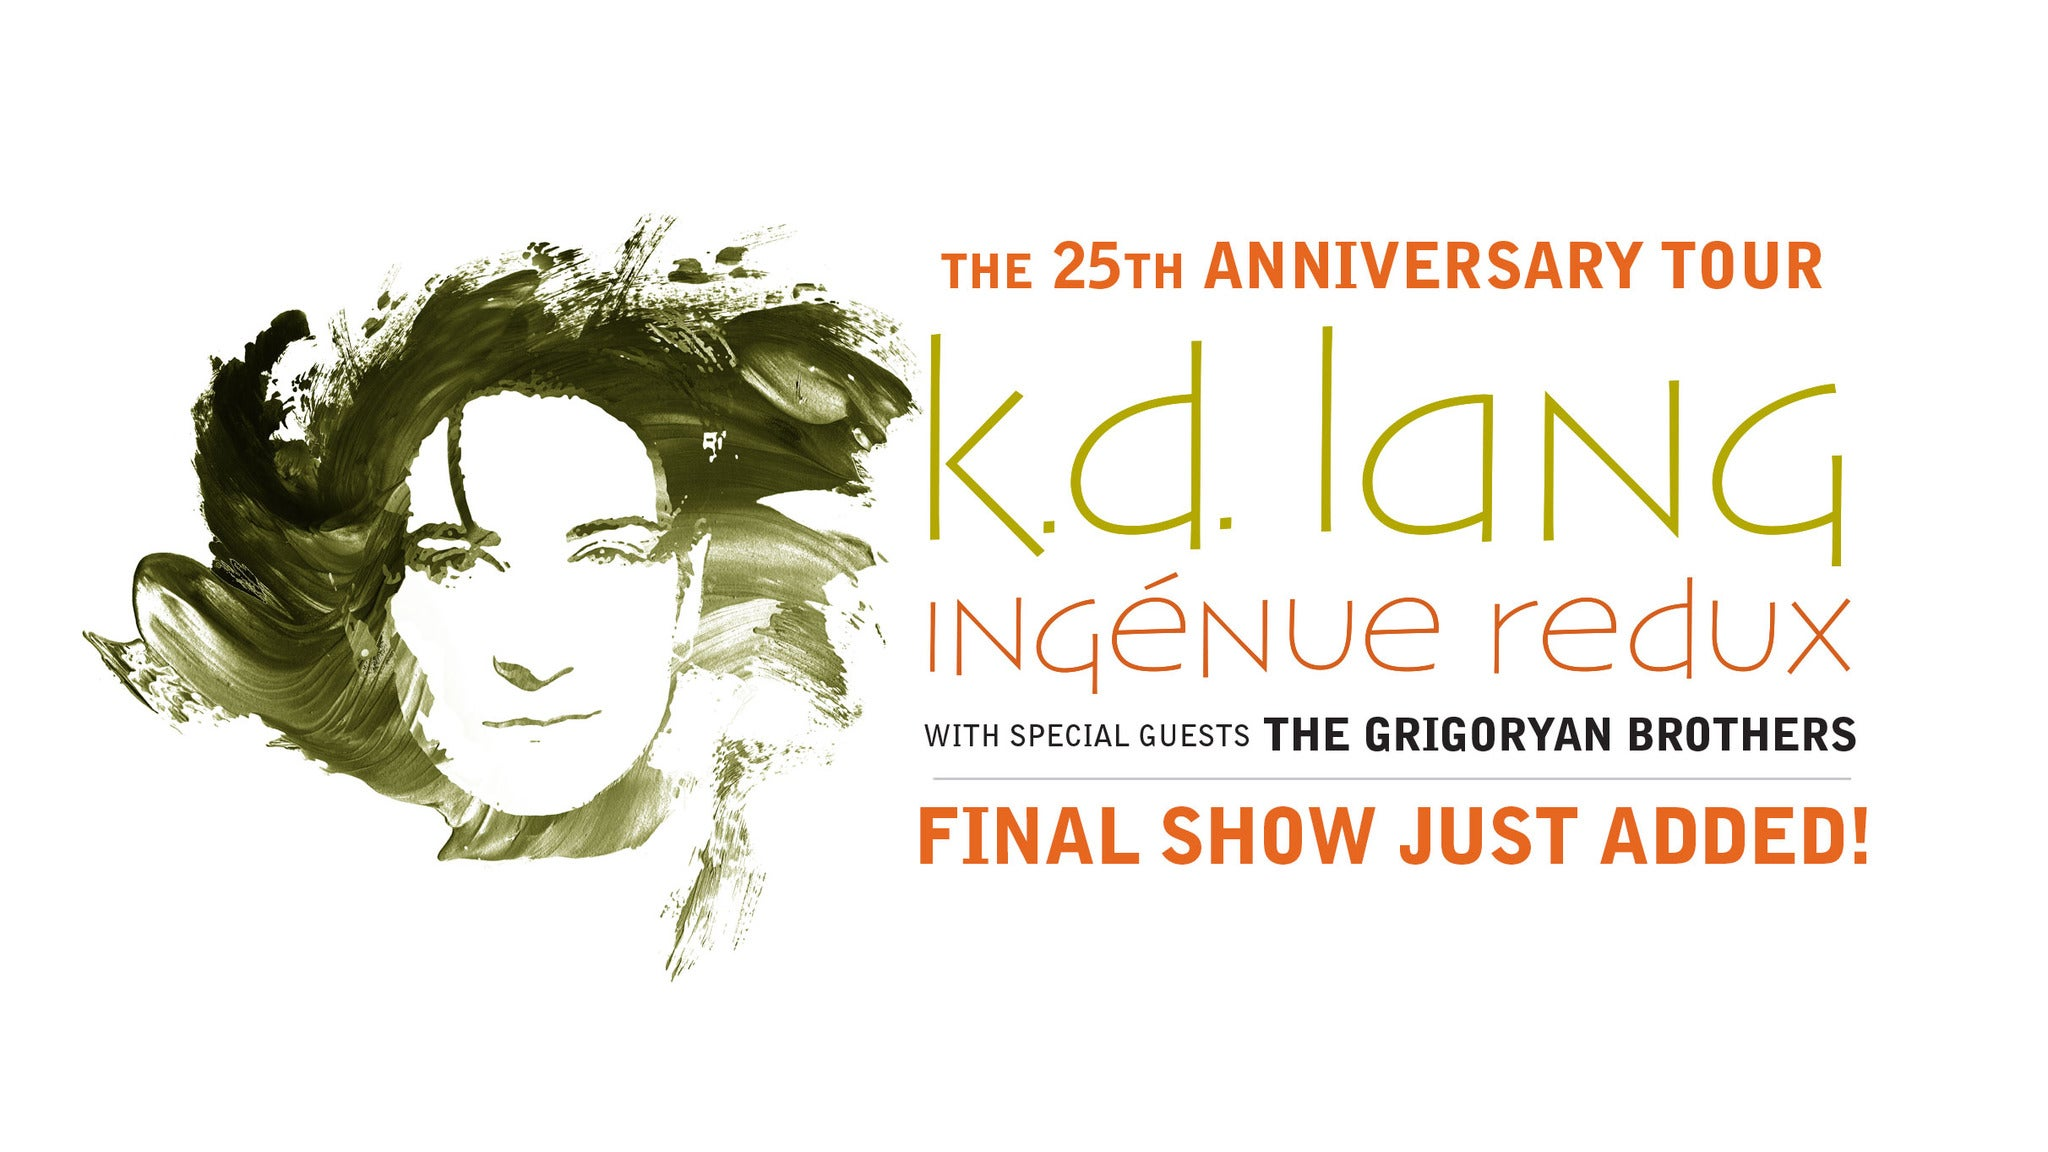 k.d lang Ingénue Redux Tour at Chandler Center for the Arts